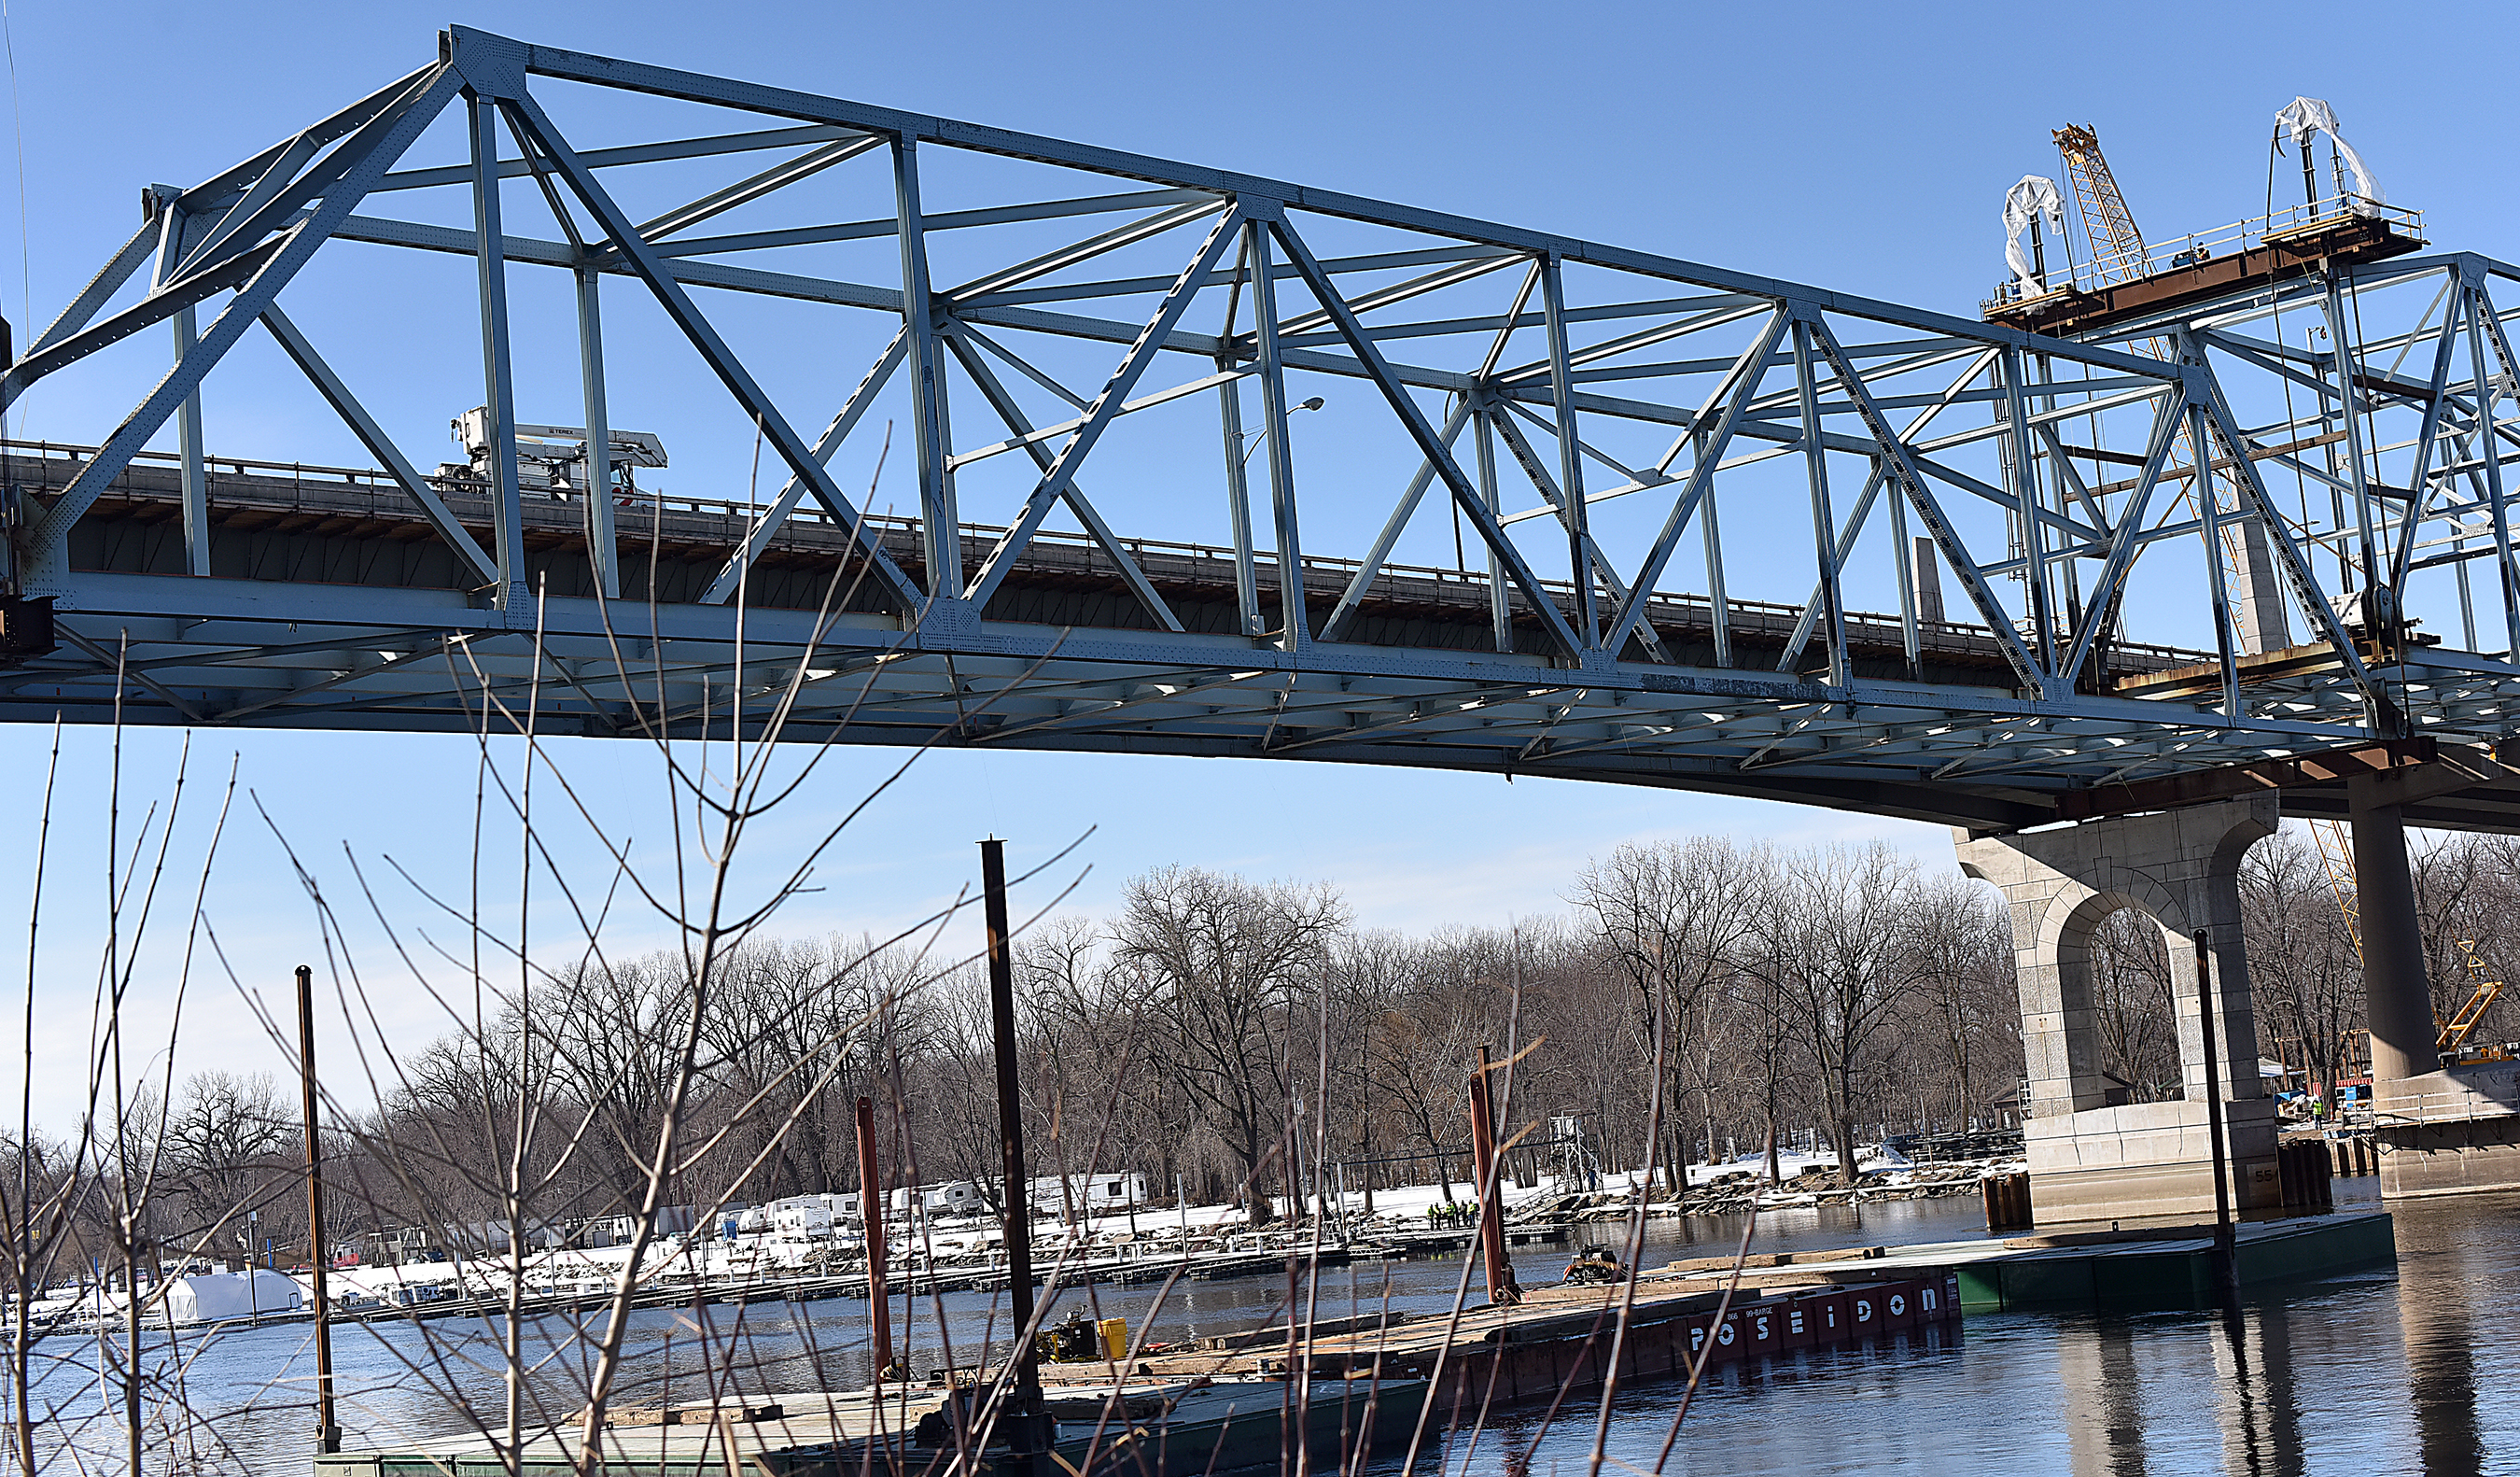 Photo: The steel framework of the bridge's center span is being slowly lowered onto a barge.